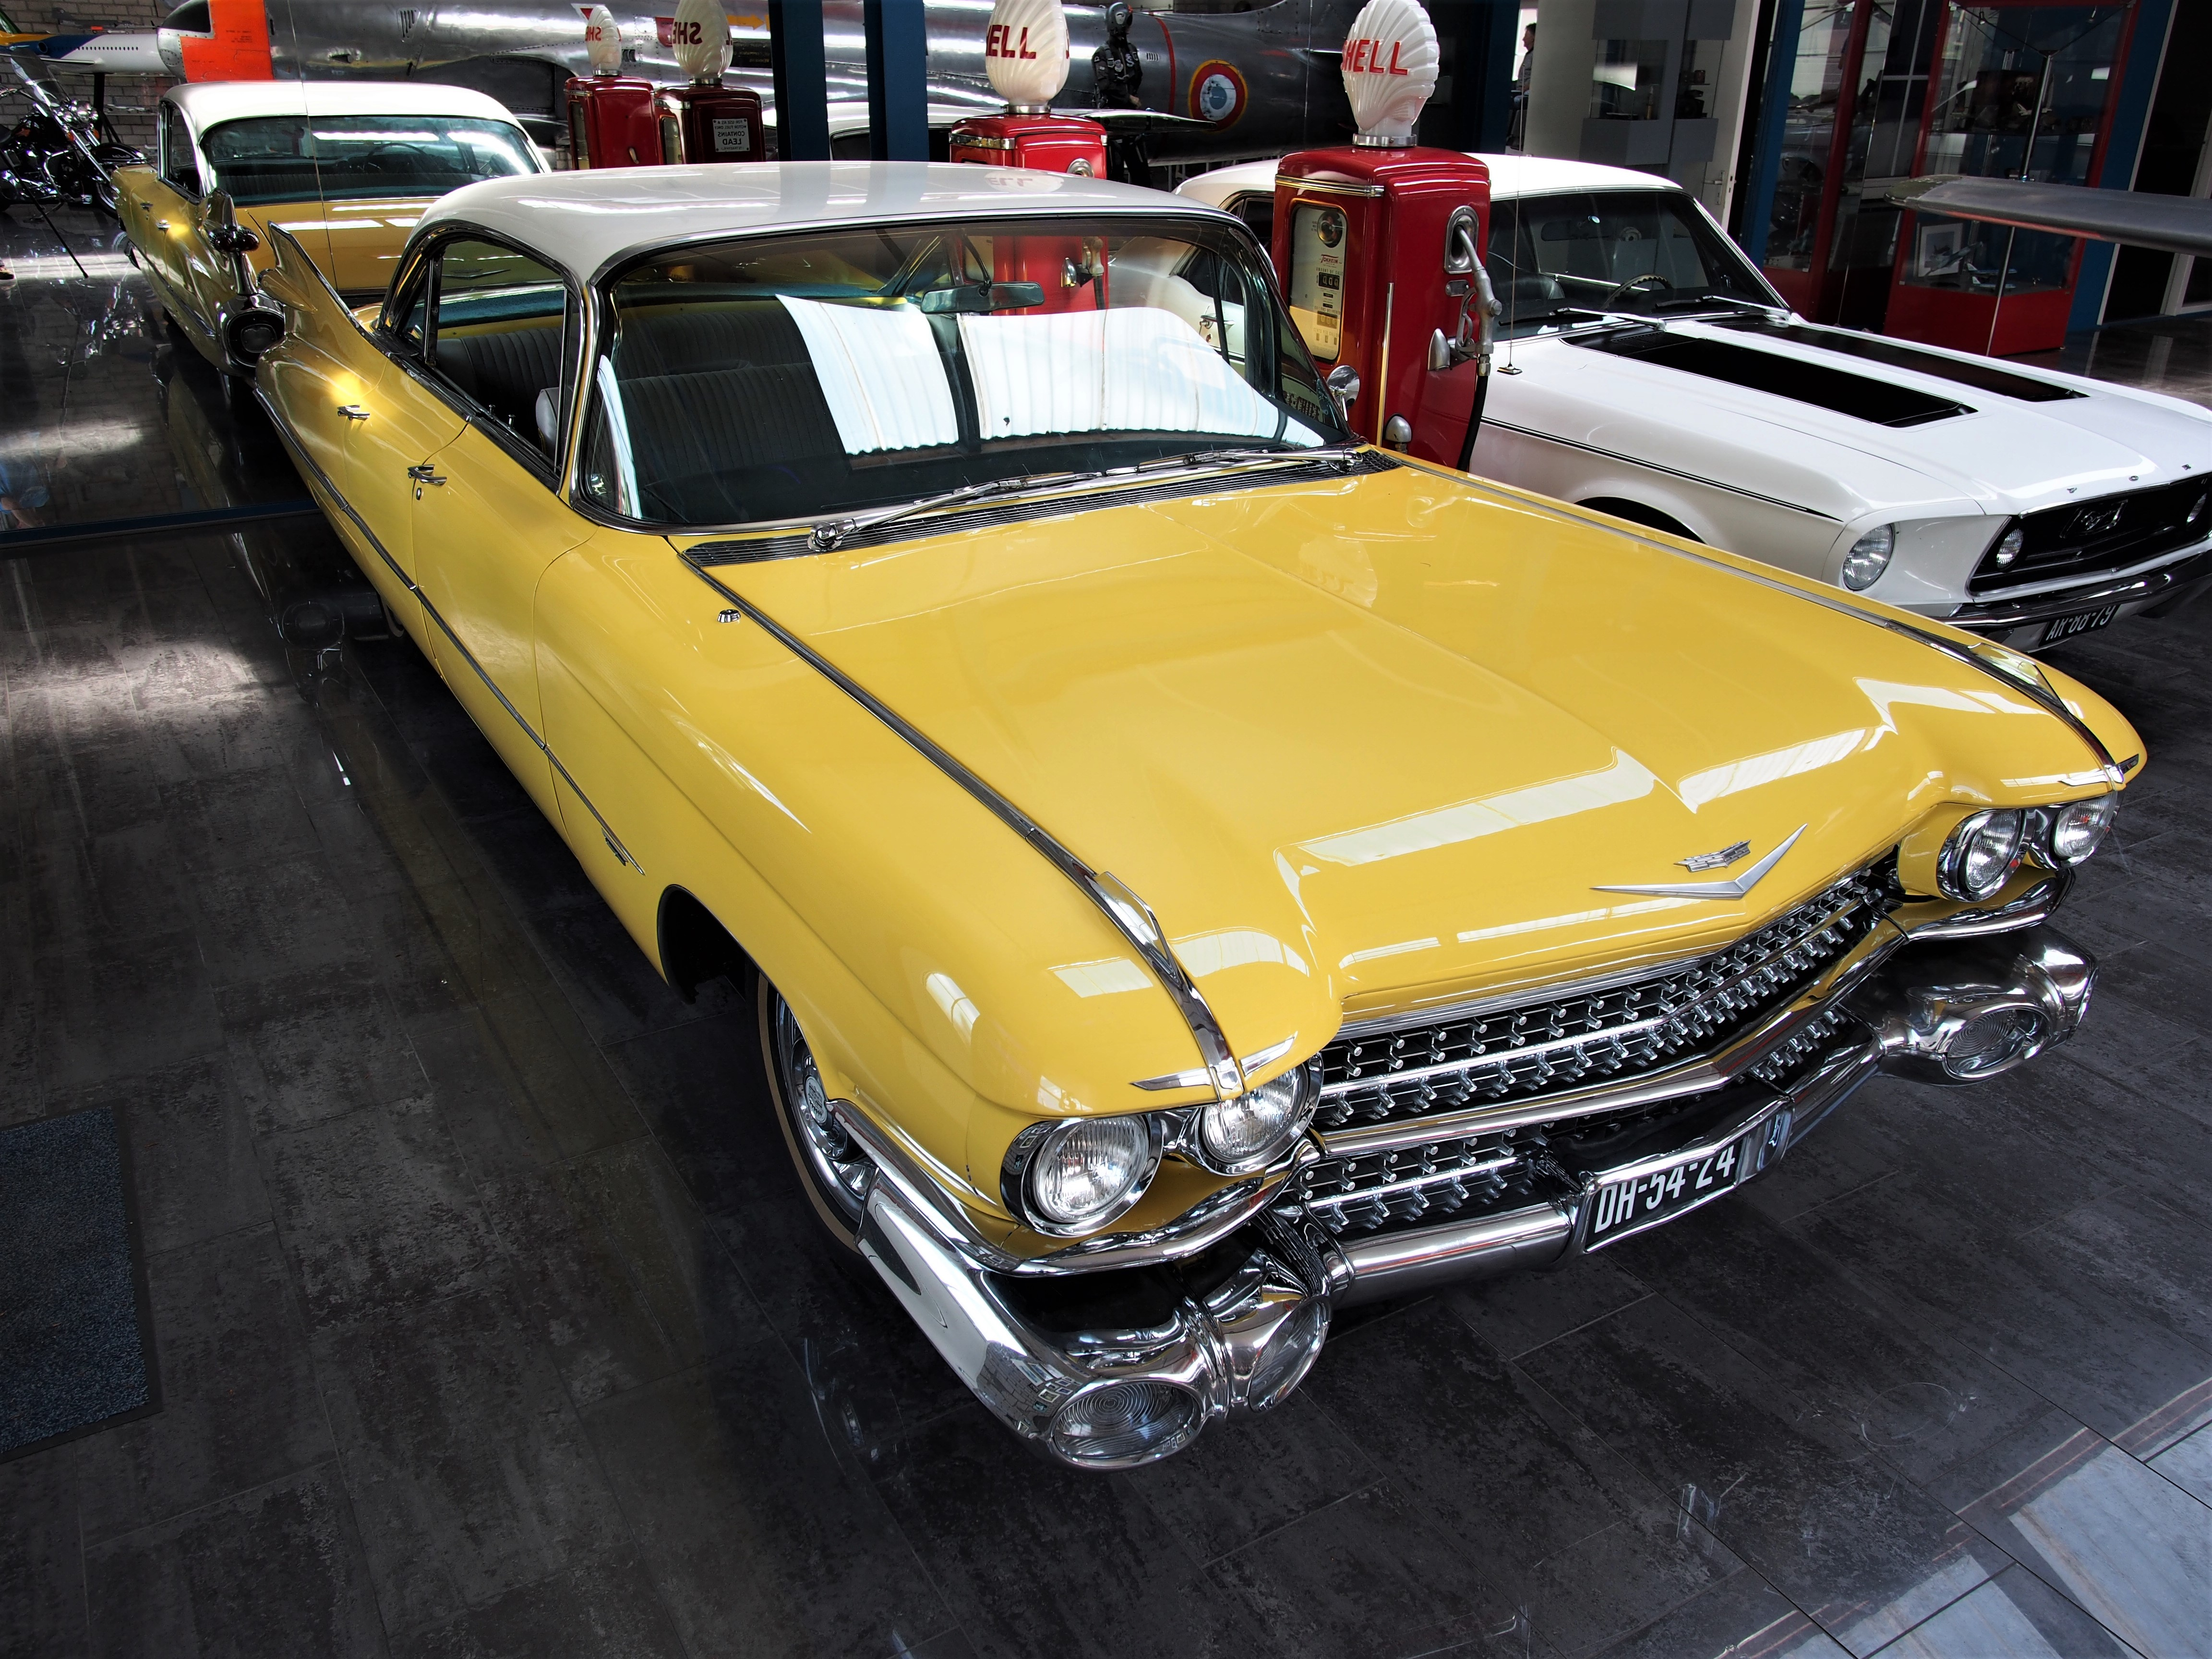 File:Yellow Cadillac at Piet Smits pic1.JPG - Wikimedia Commons